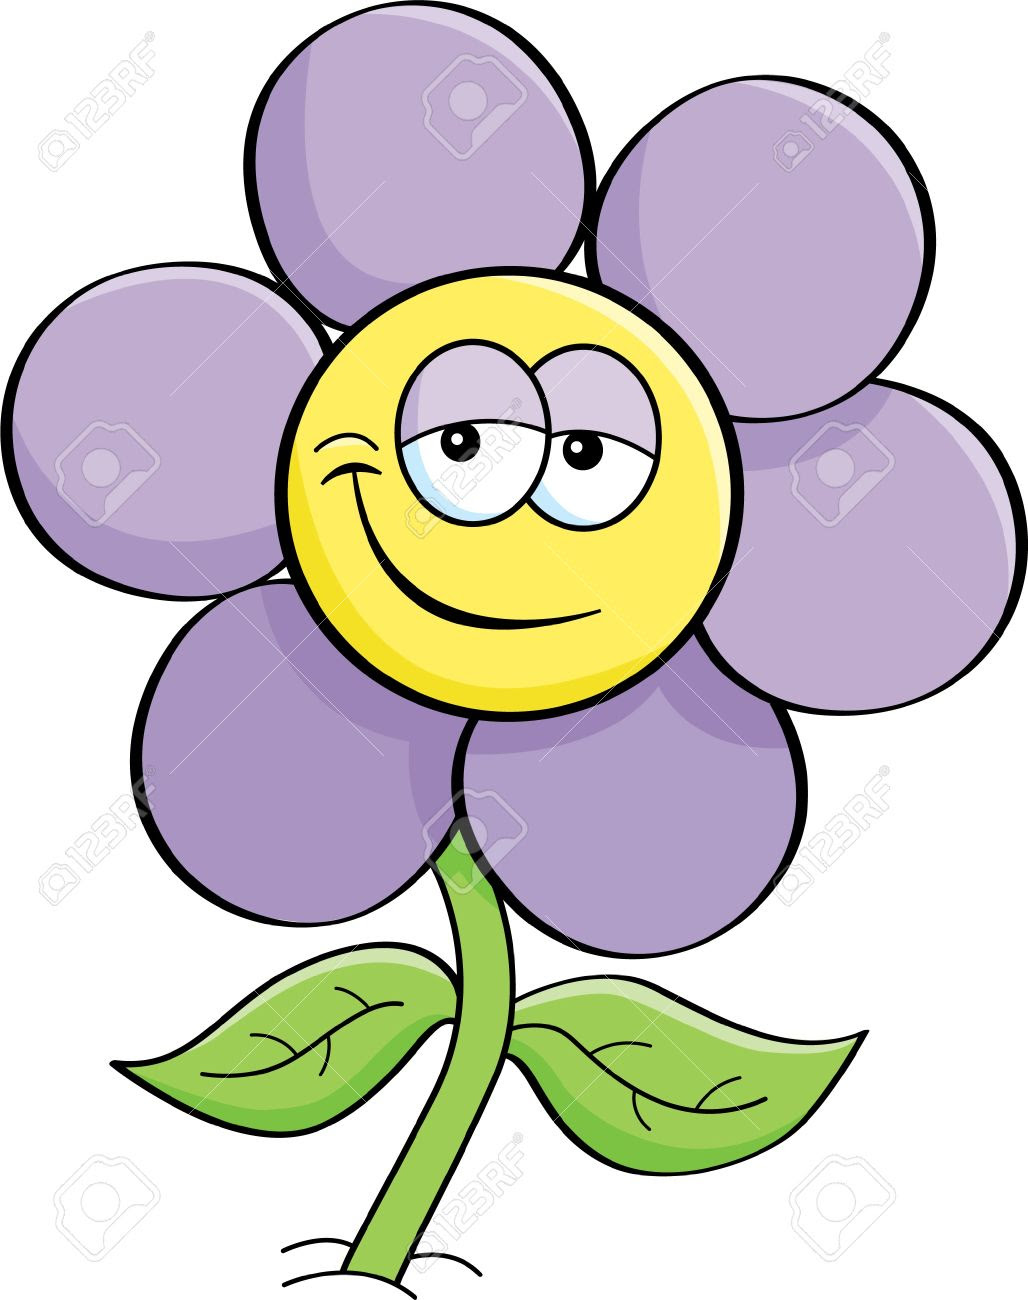 Beautiful Cartoon Flower Images Free Top Collection Of Different Types Of Flowers In The Images Hd